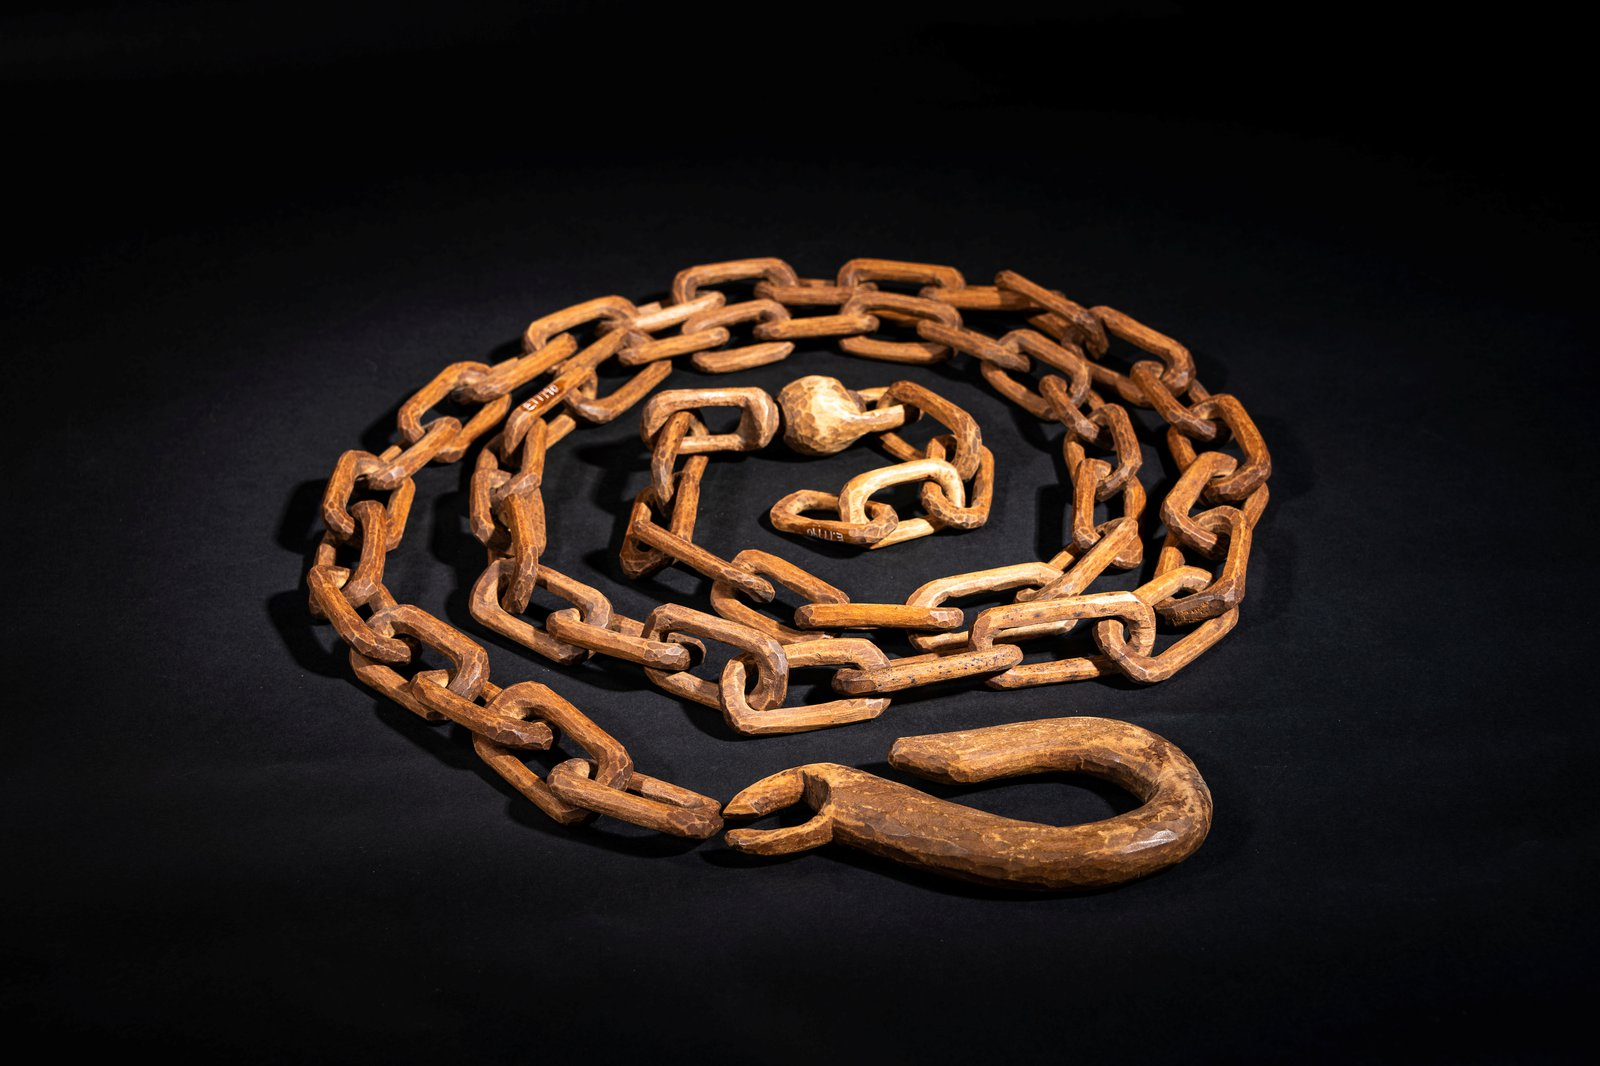 Brungle Wooden Chain, Spinner and Hook c. 1900